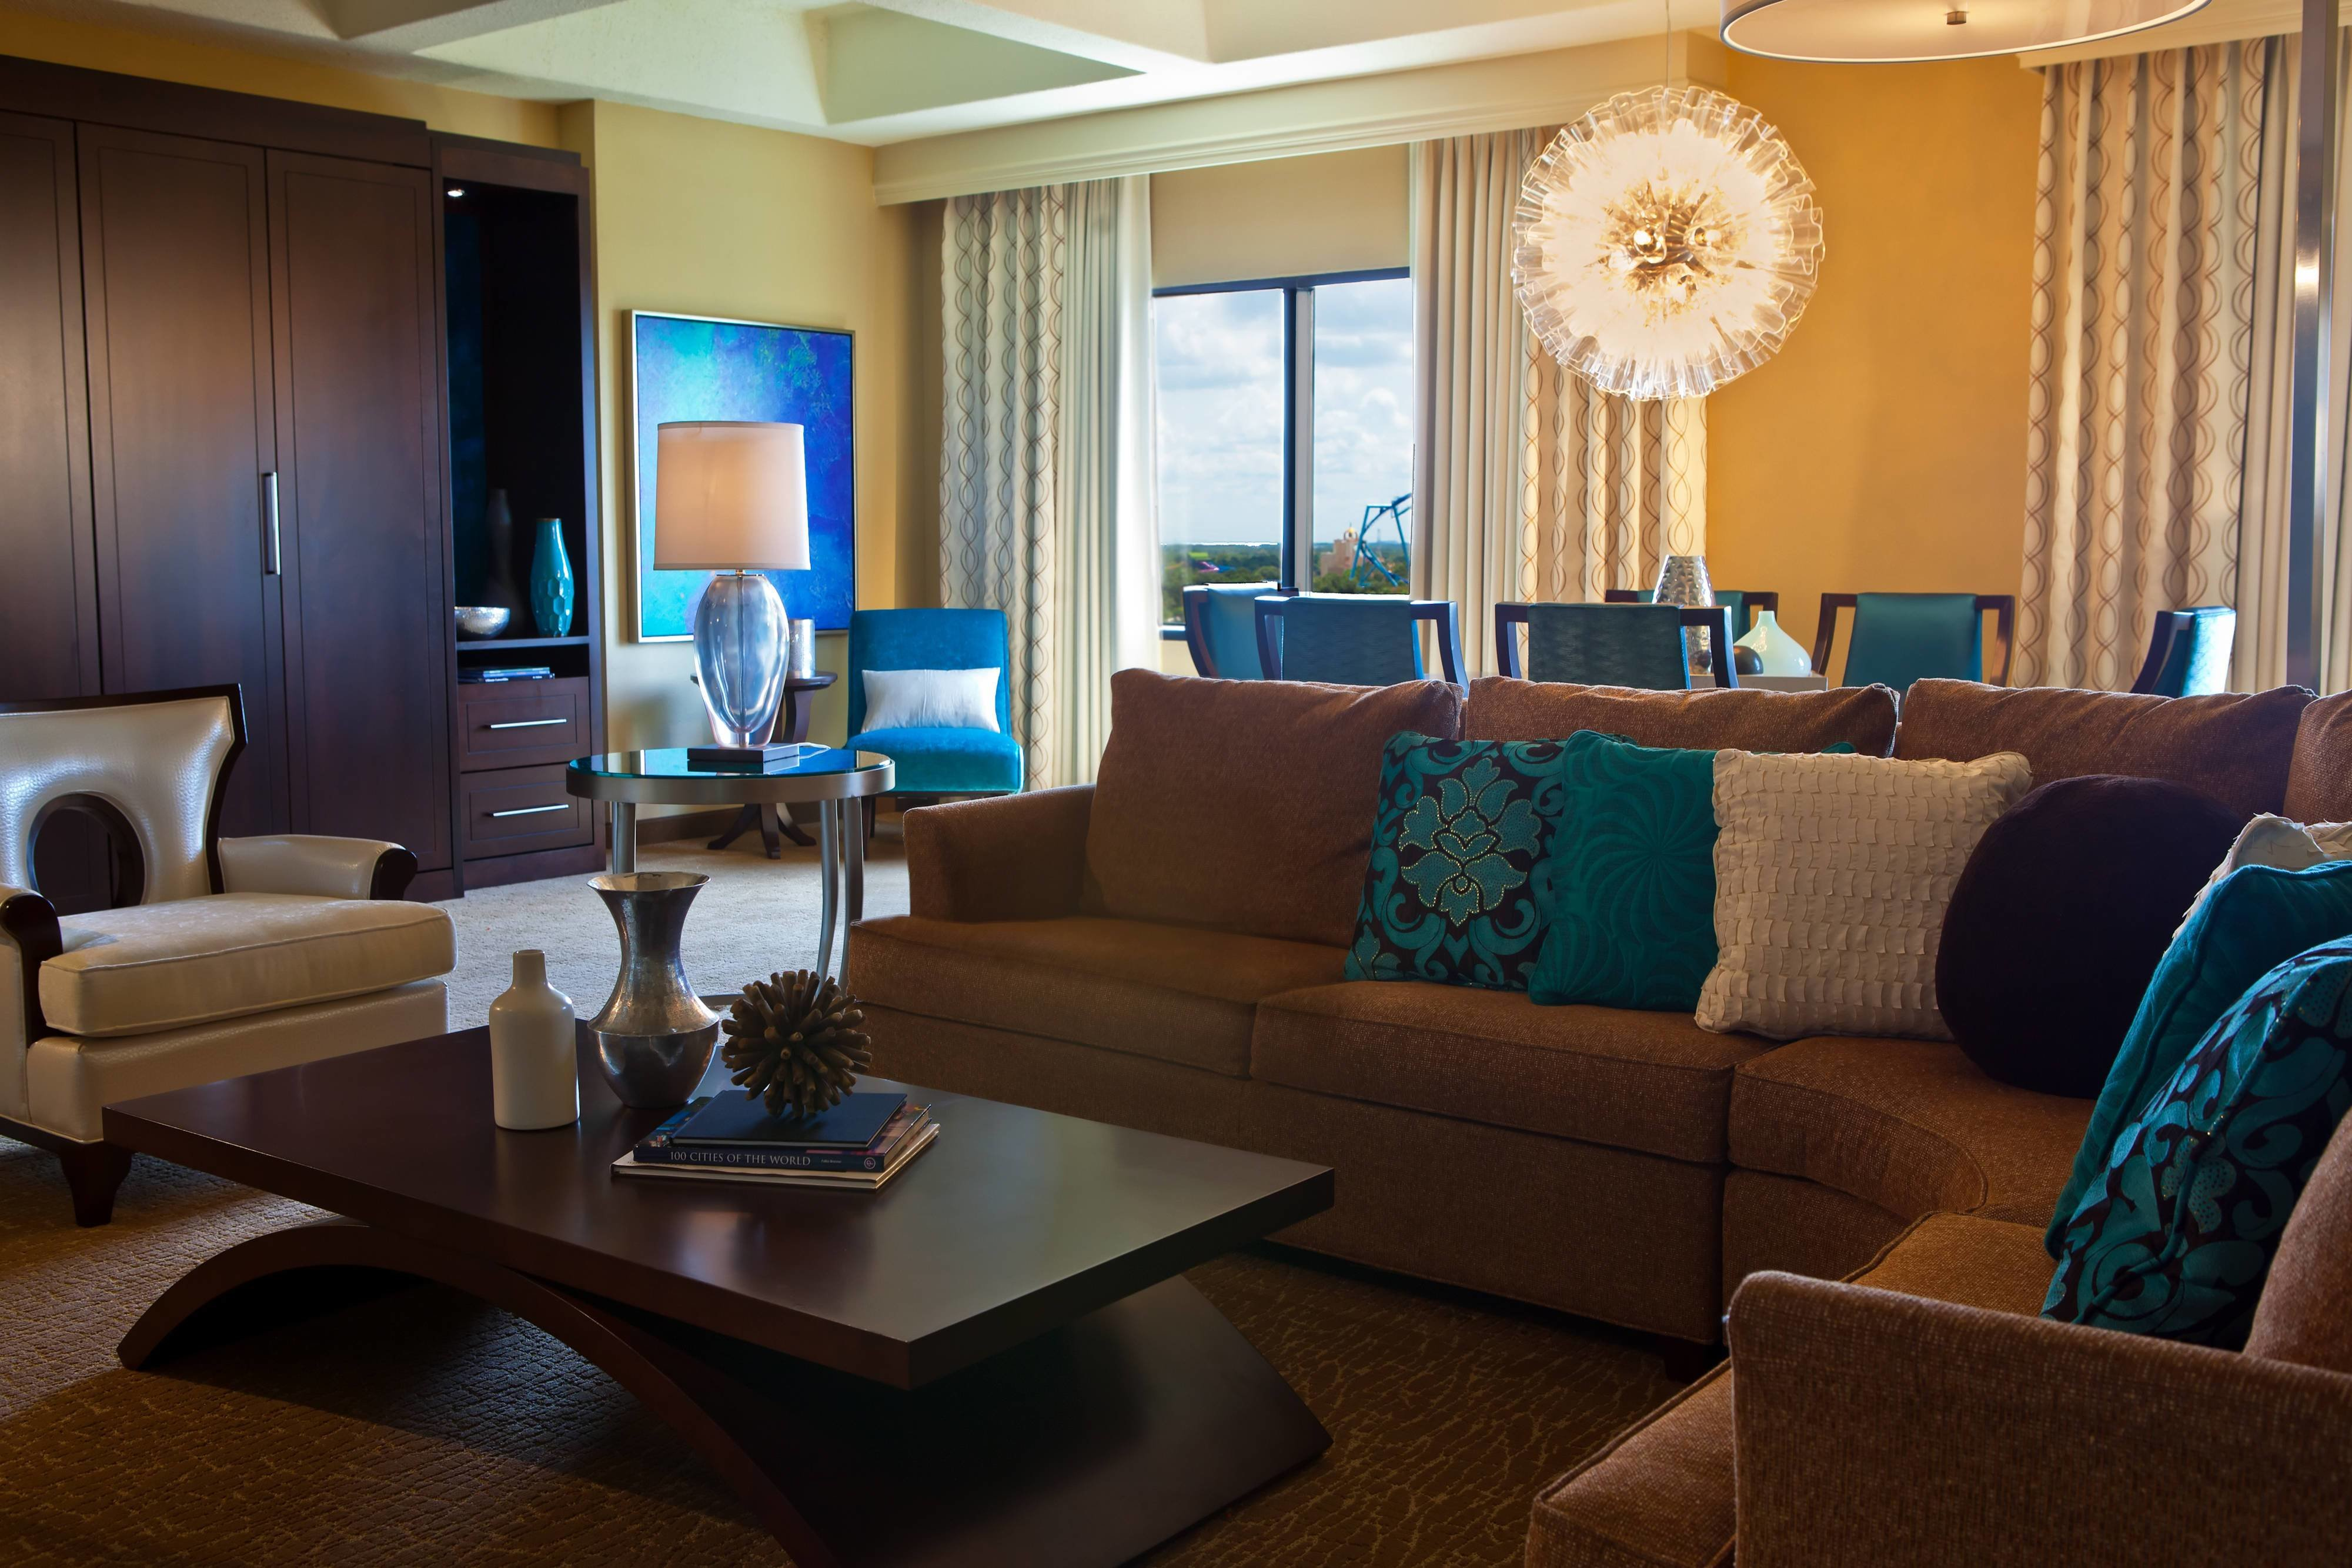 Best Resort Hotel Accommodation Near Seaworld Orlando Florida With Pictures